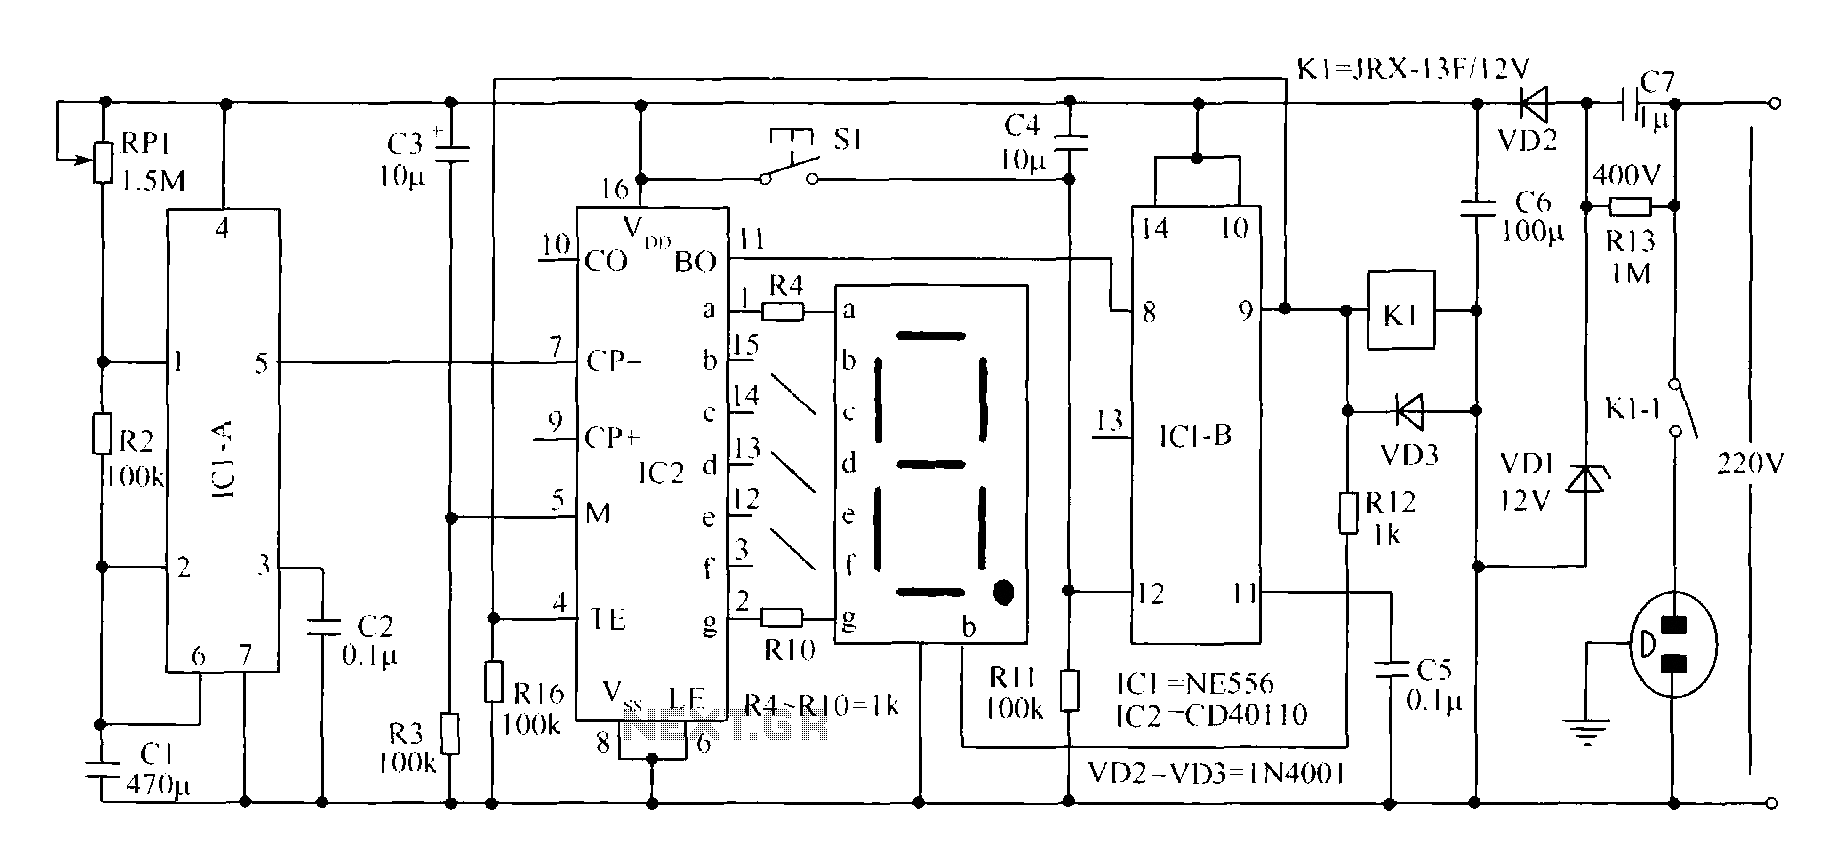 countdown timer circuit diagram the wiring diagram meter counter > timer circuits > novel circuit diagram of the circuit diagram